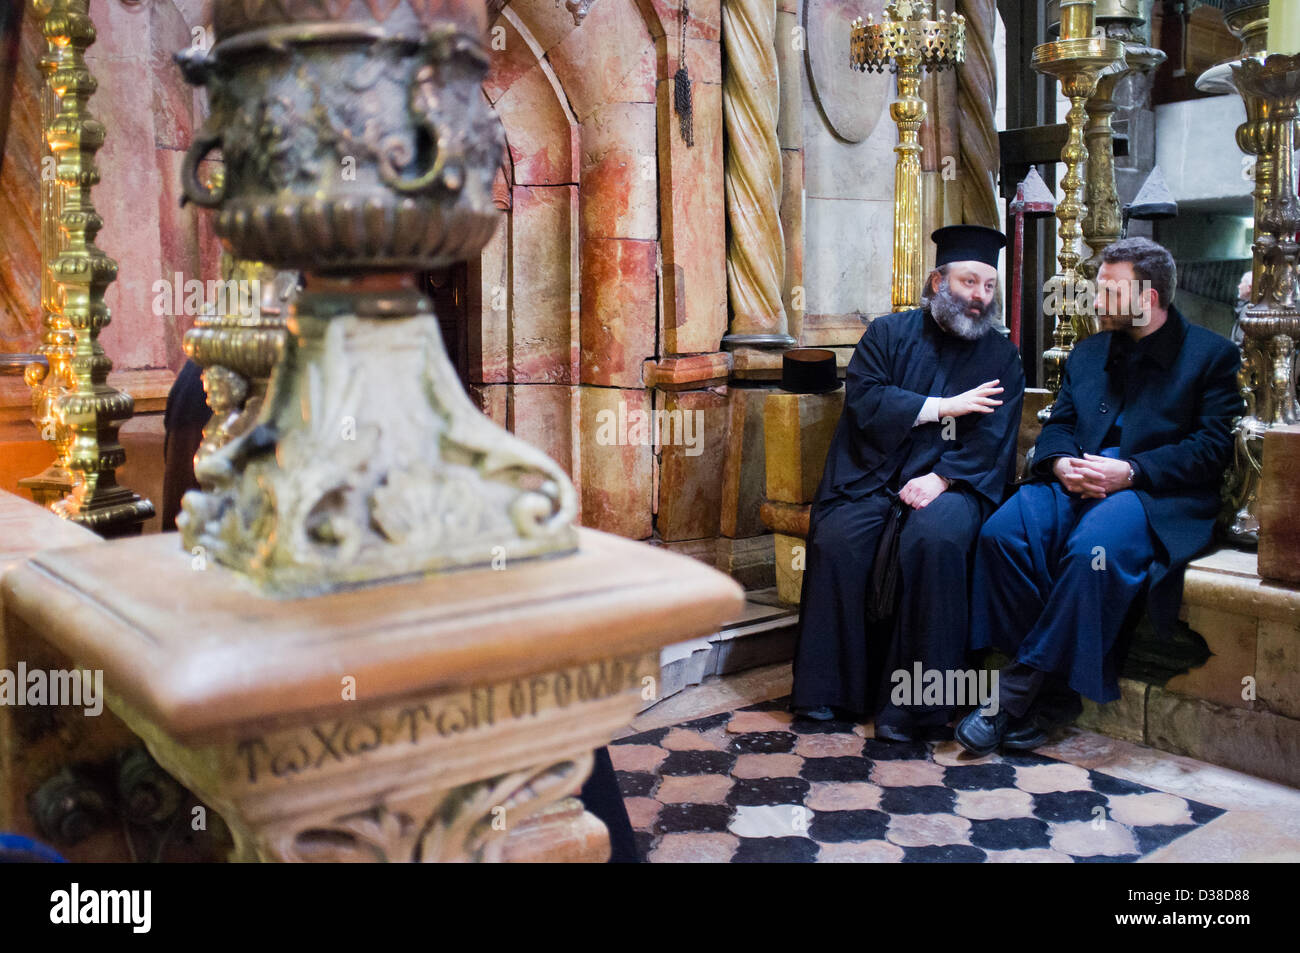 Jerusalem, Israel. 13th February 2013. Two priests converse at the entrance to what is believed to be the tomb of Stock Photo